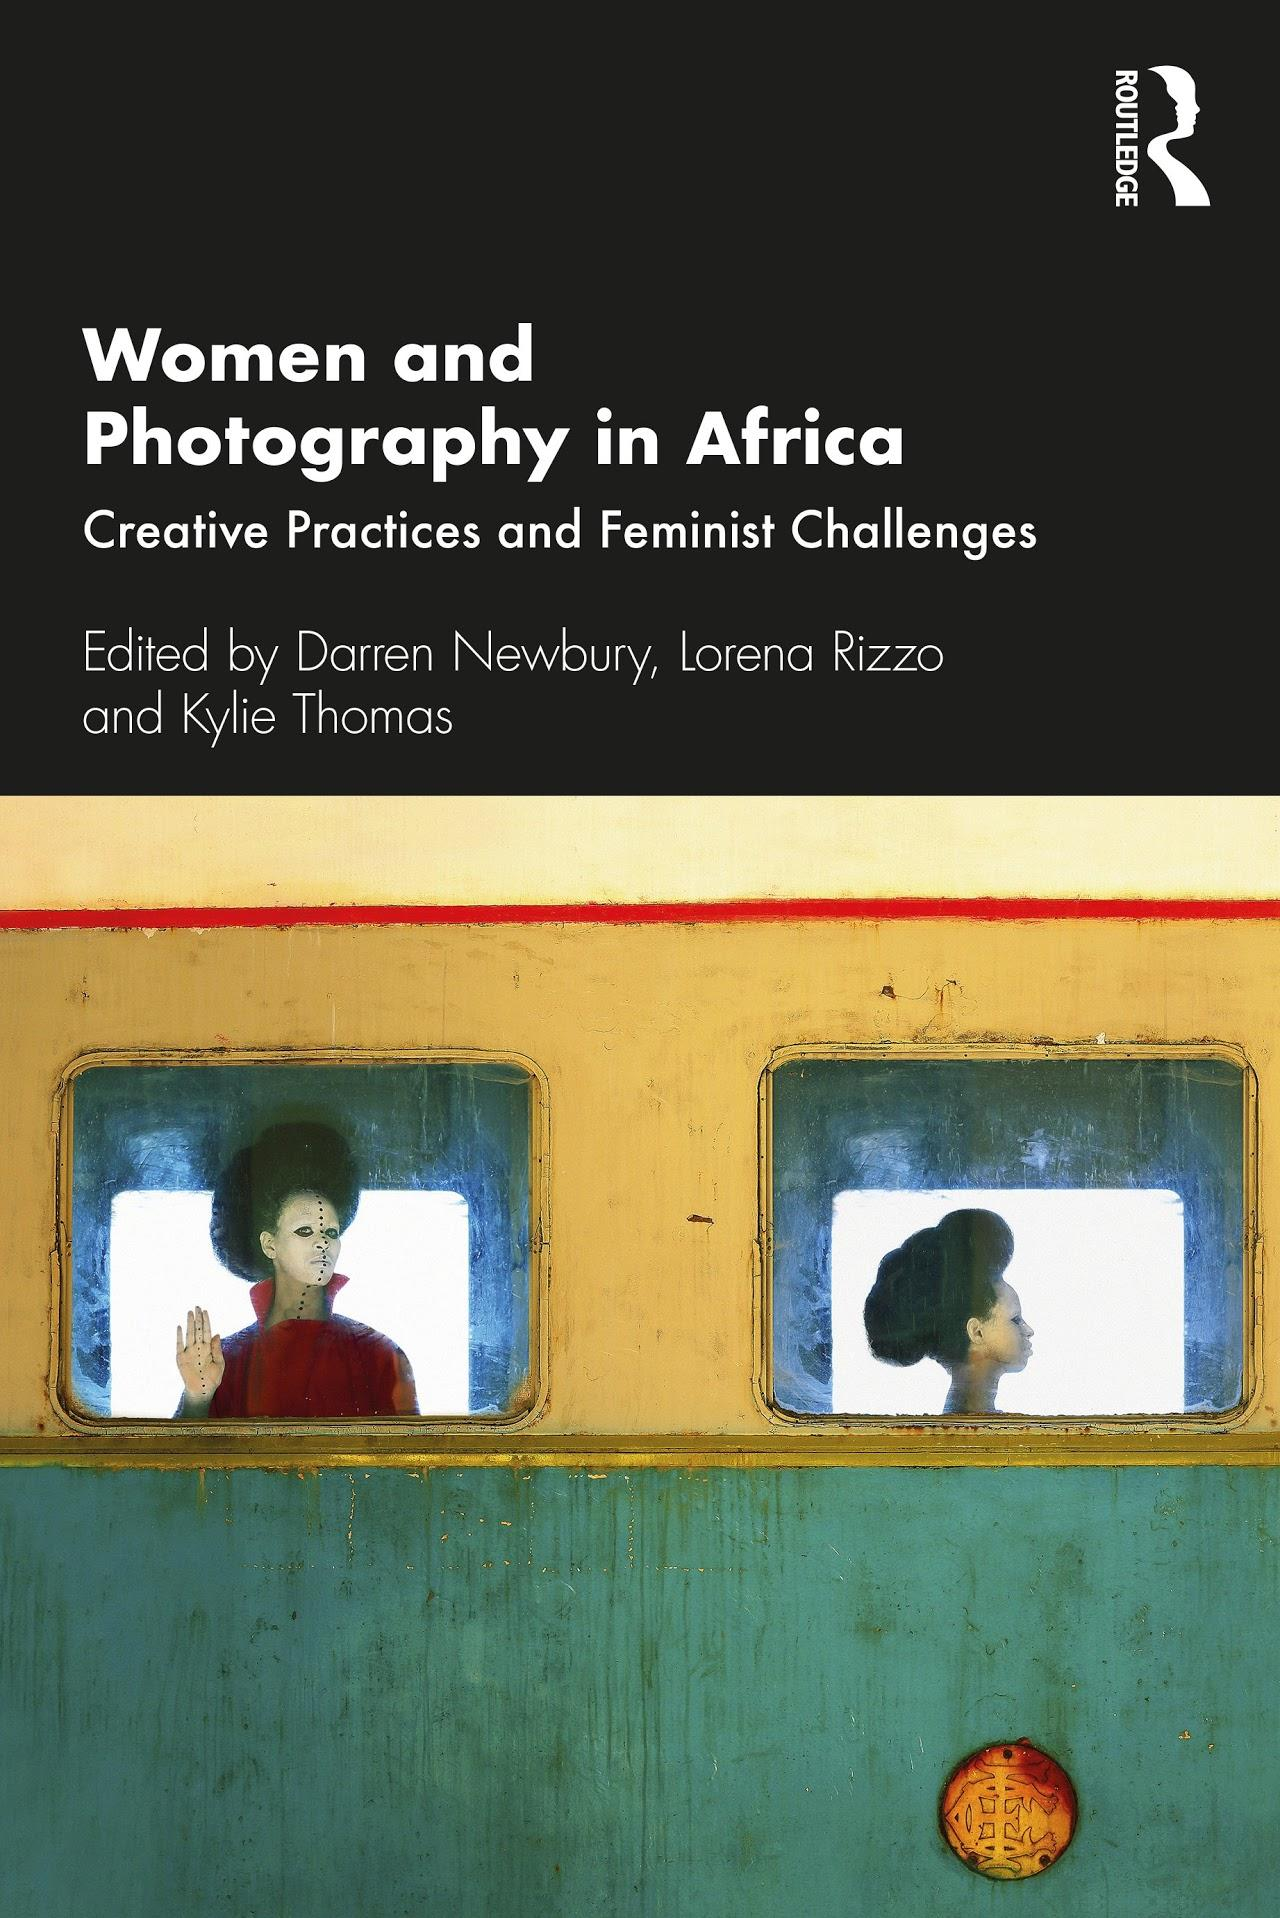 Women and Photography in Africa Creative Practices and Feminist Challenges (2020)